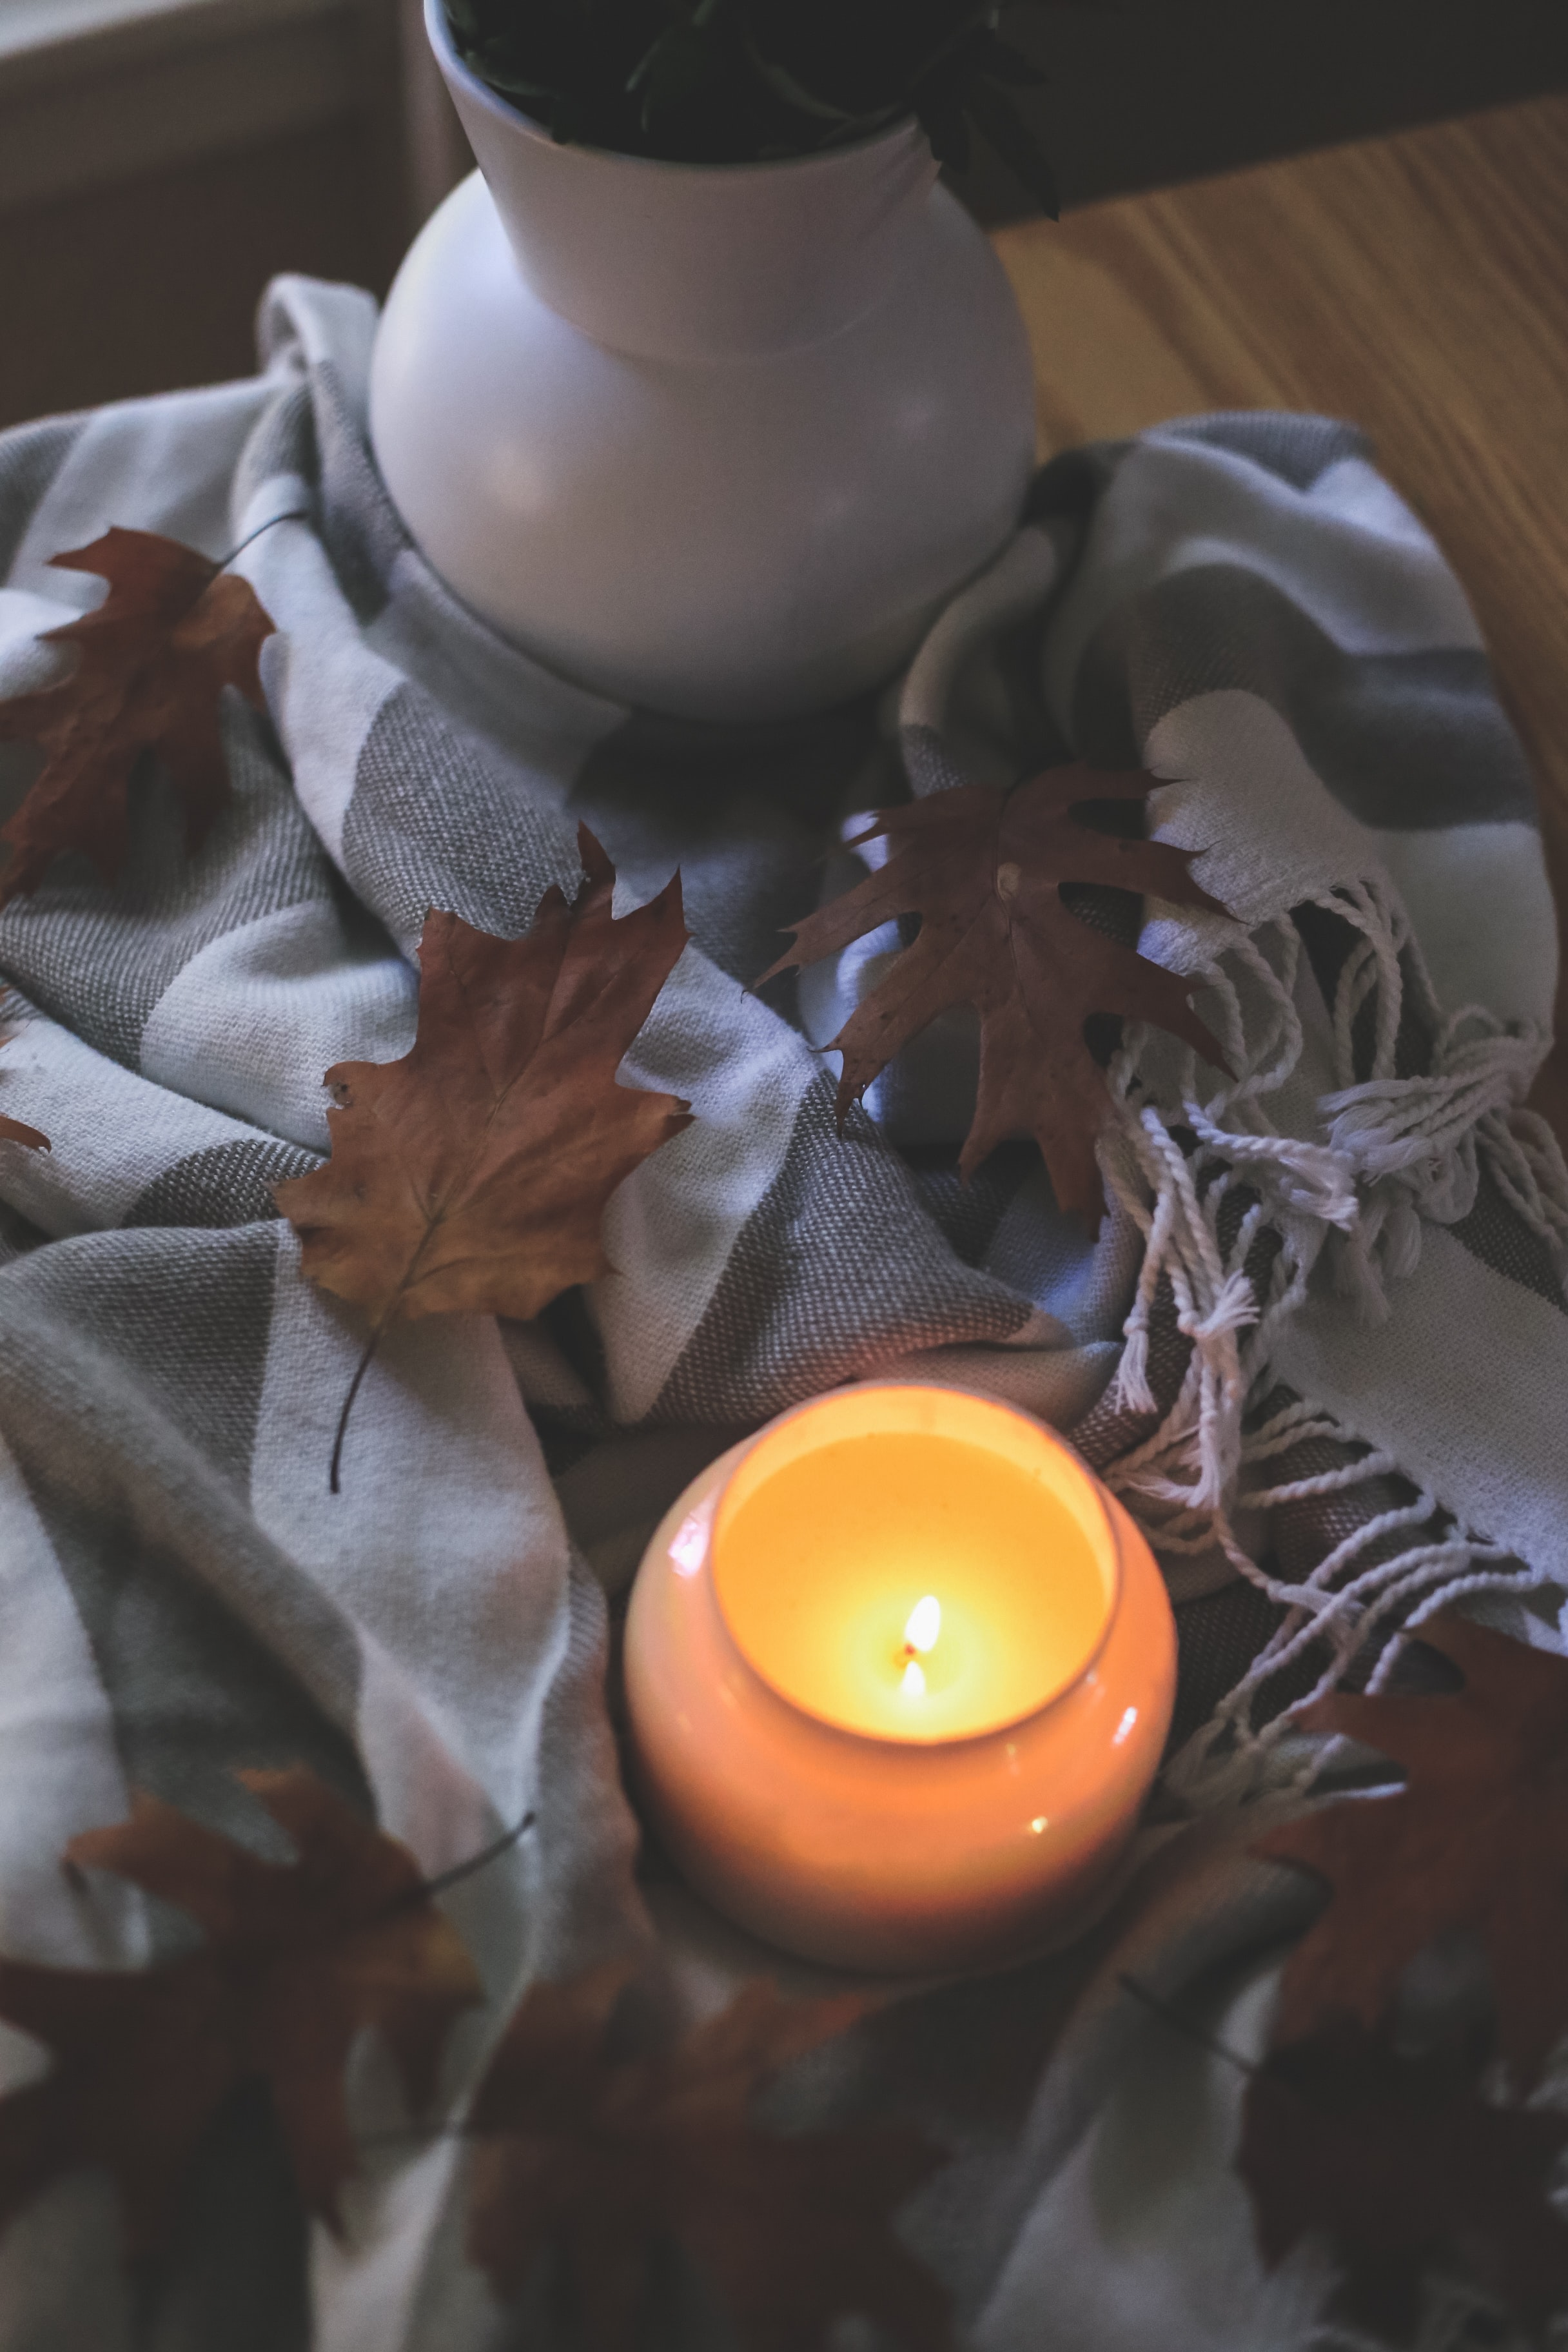 119073 download wallpaper Miscellanea, Miscellaneous, Candle, Leaves, Autumn, Cloth, Flame screensavers and pictures for free